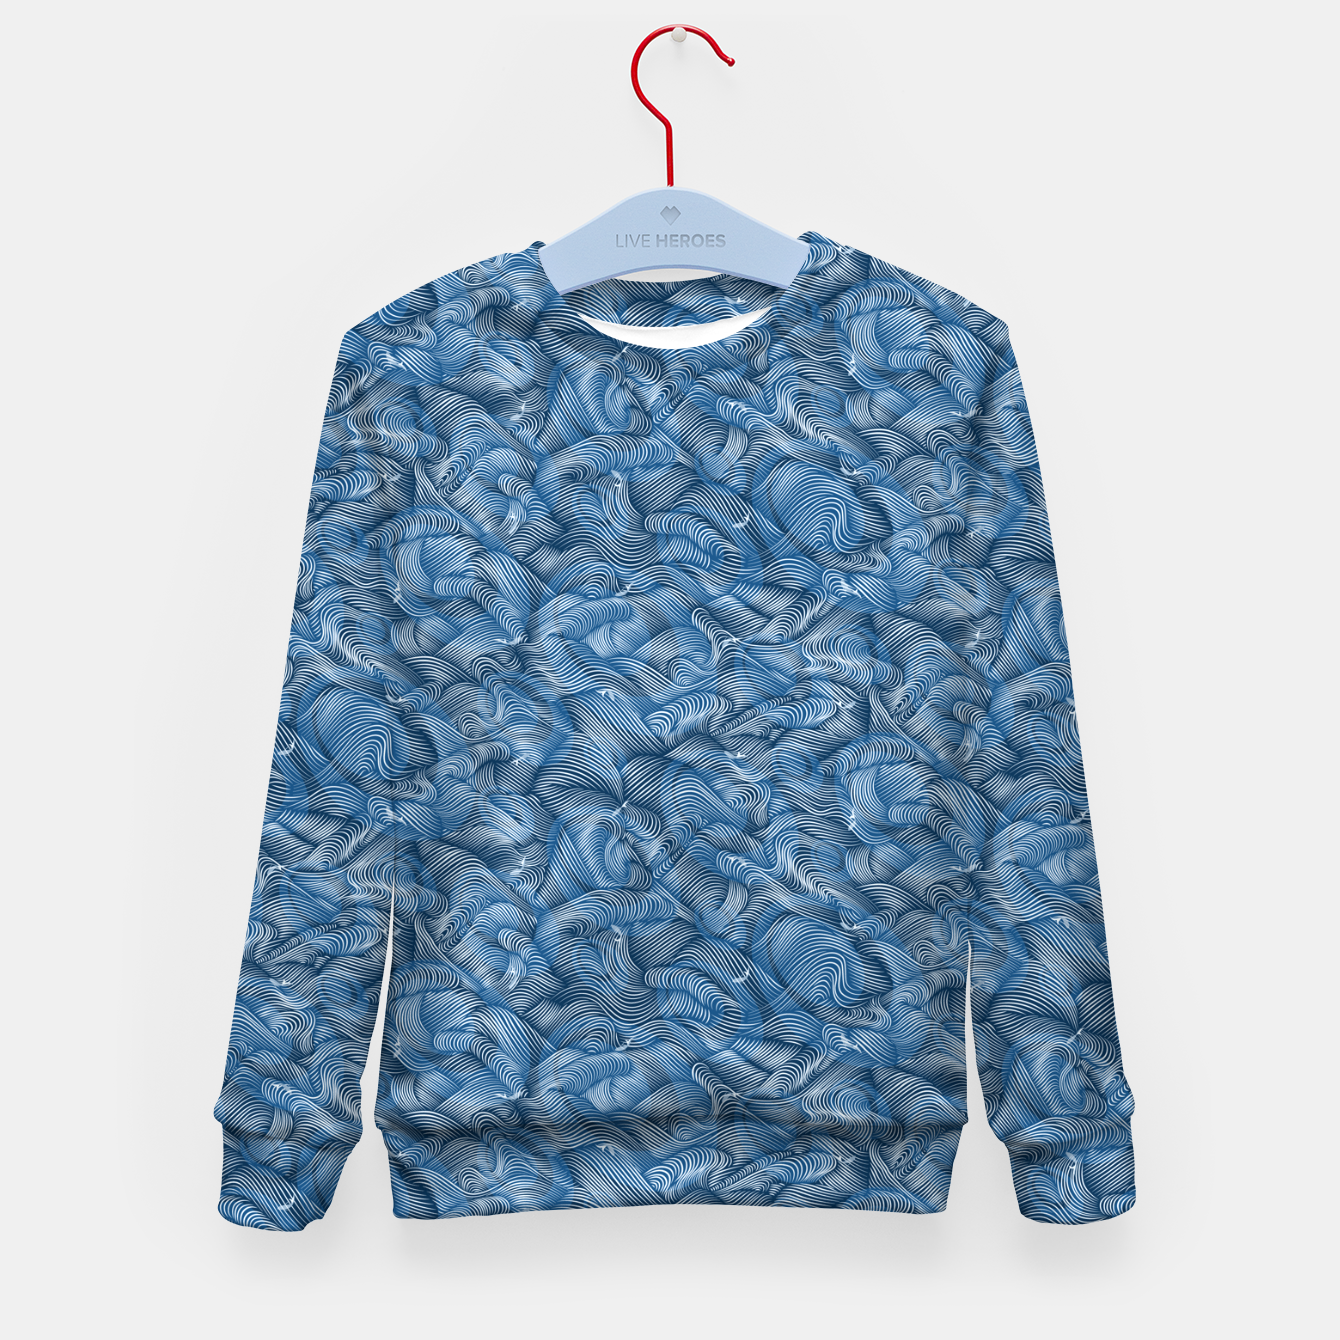 Foto Slippery Fishes Floating in the Classic Blue Waves Kid's sweater - Live Heroes